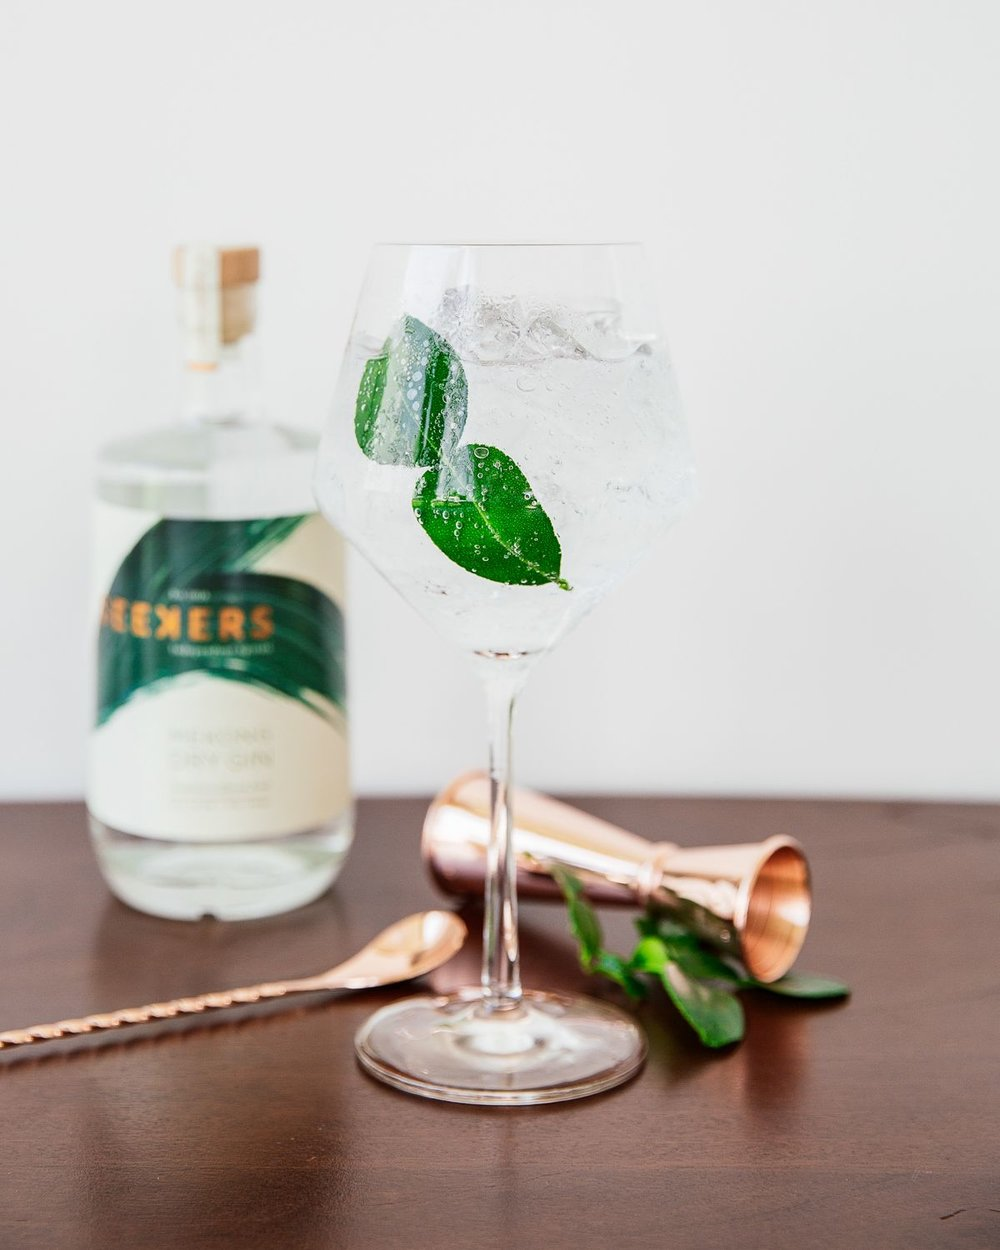 Seekers & Tonic - The ultimate sundowner. Refreshing and aromatic.50ml Seekers Mekong Dry Gin150ml Tonic WaterServe in a large copa glass. Pack full of ice. Garnish with a Kaffir Lime Leaf.